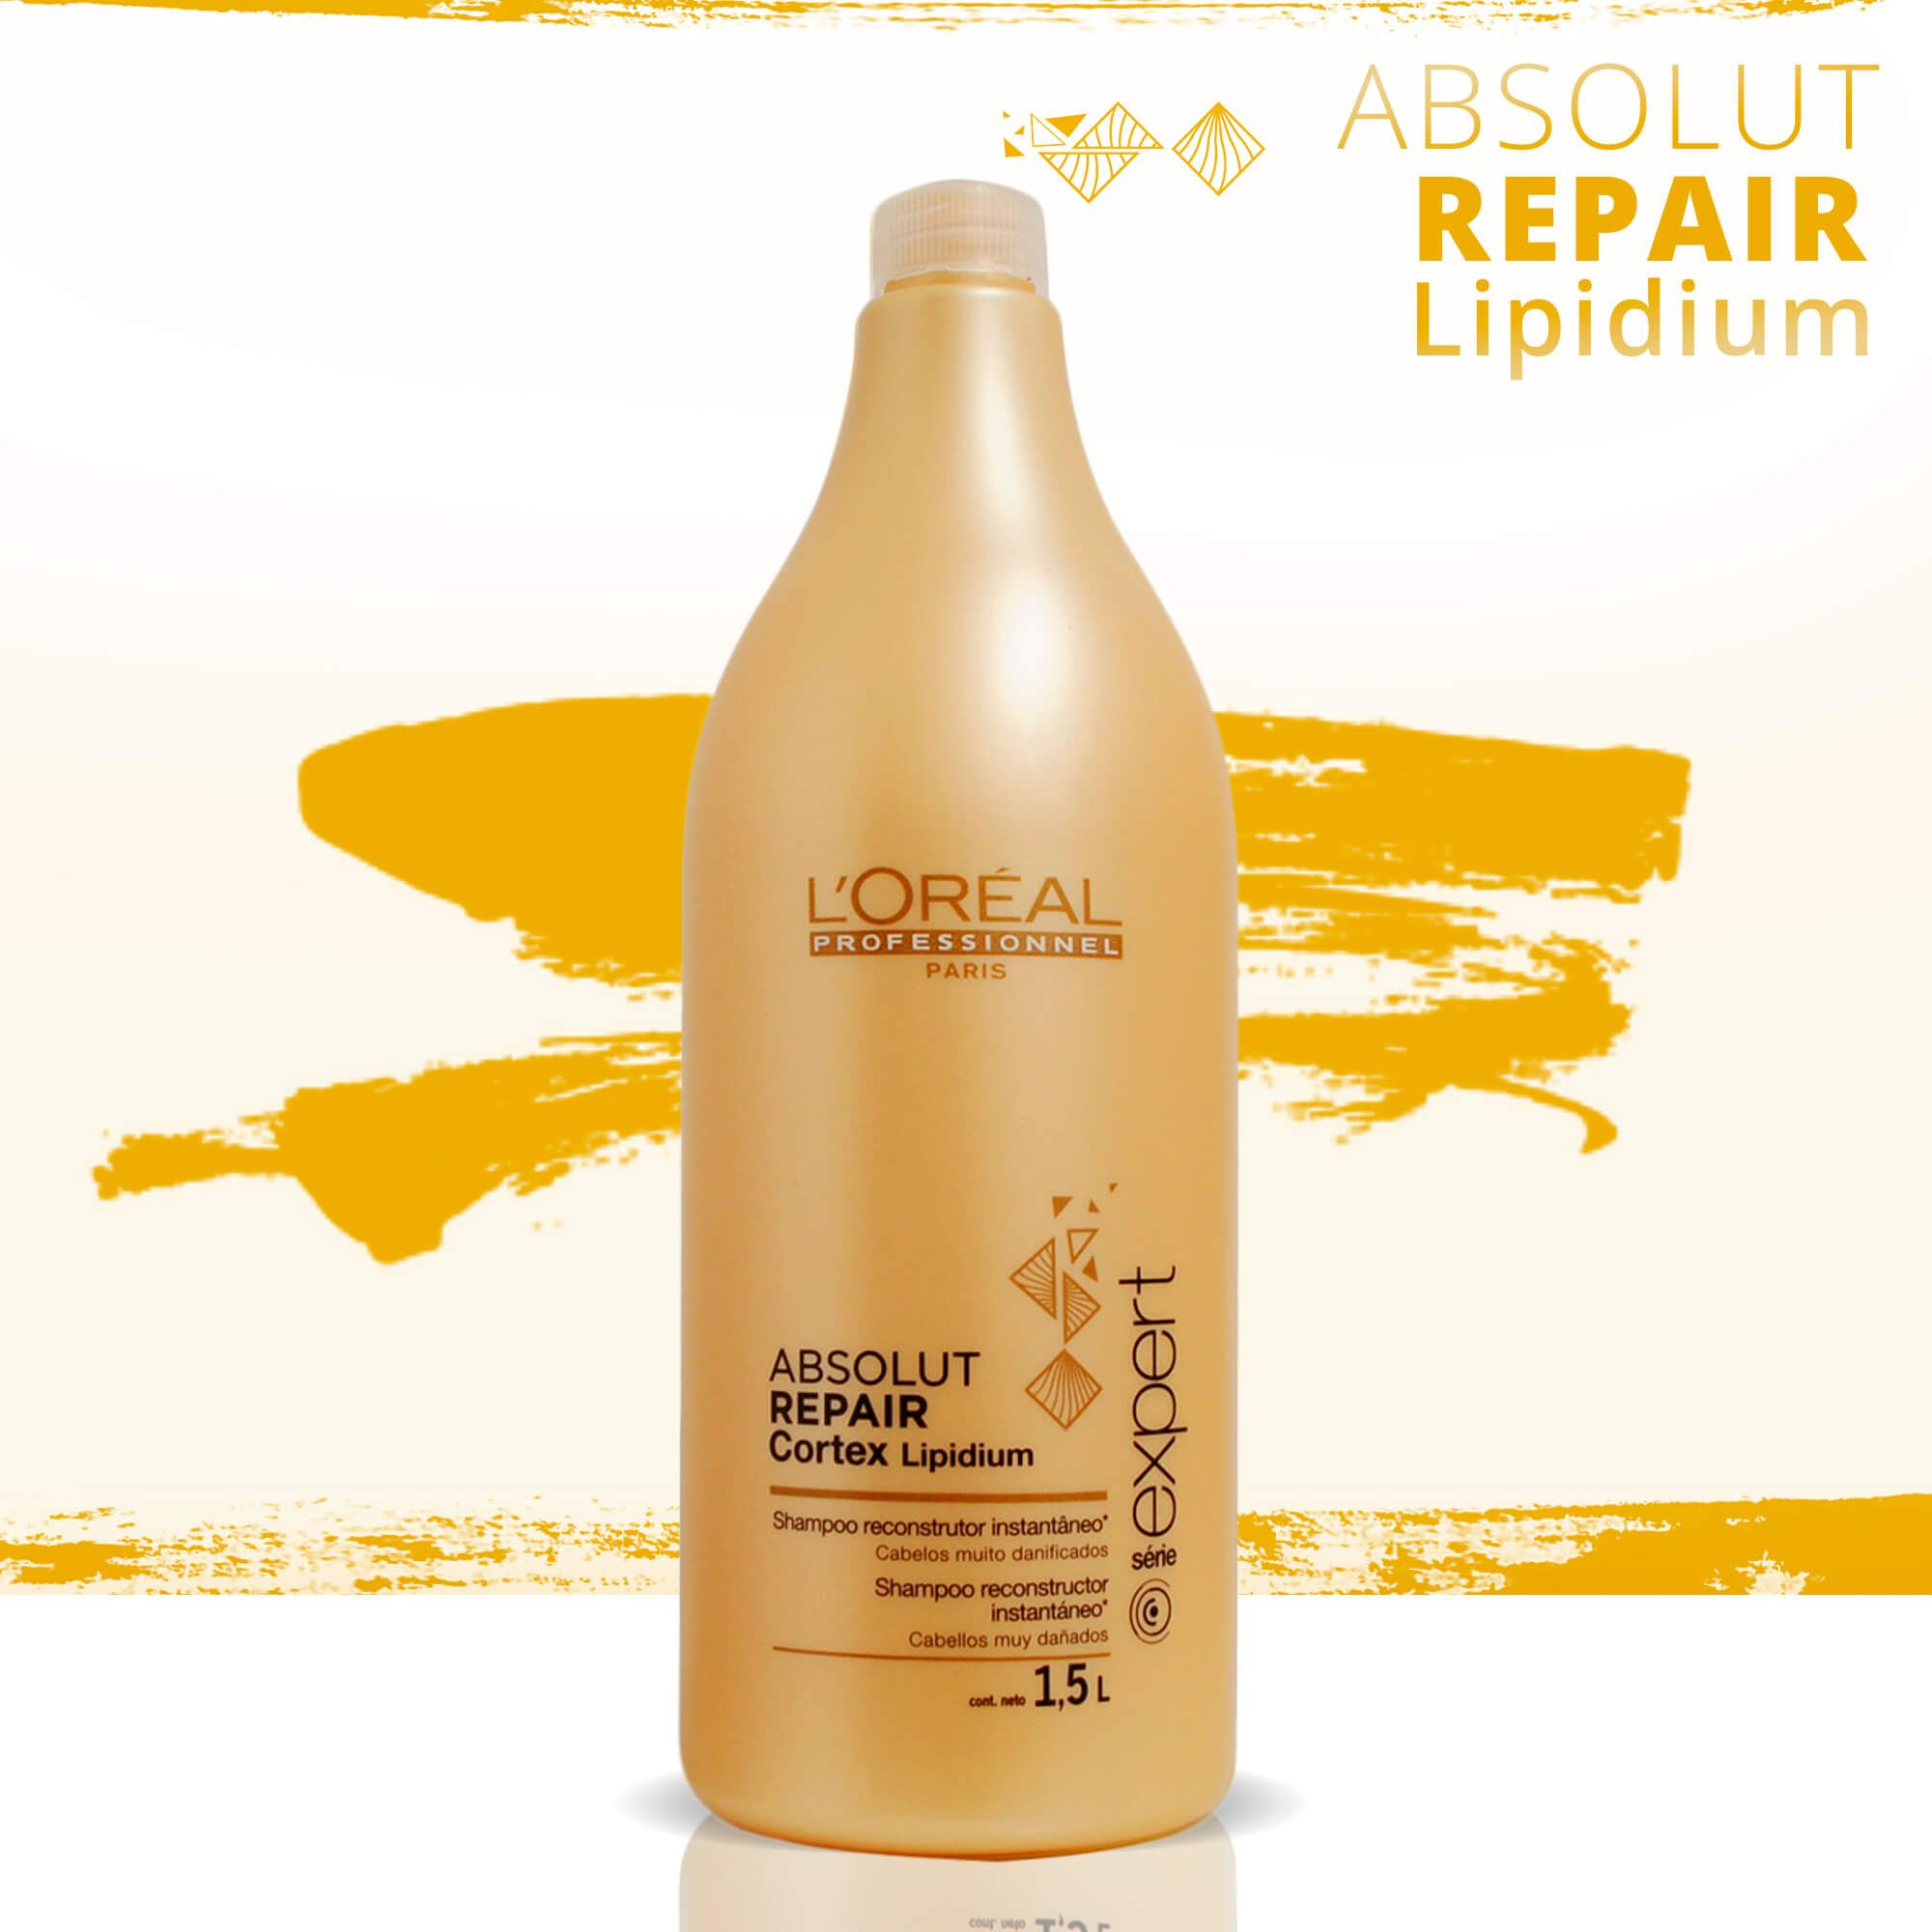 L'oréal Absolut Repair Córtex Lipidium - Shampoo 1,5l